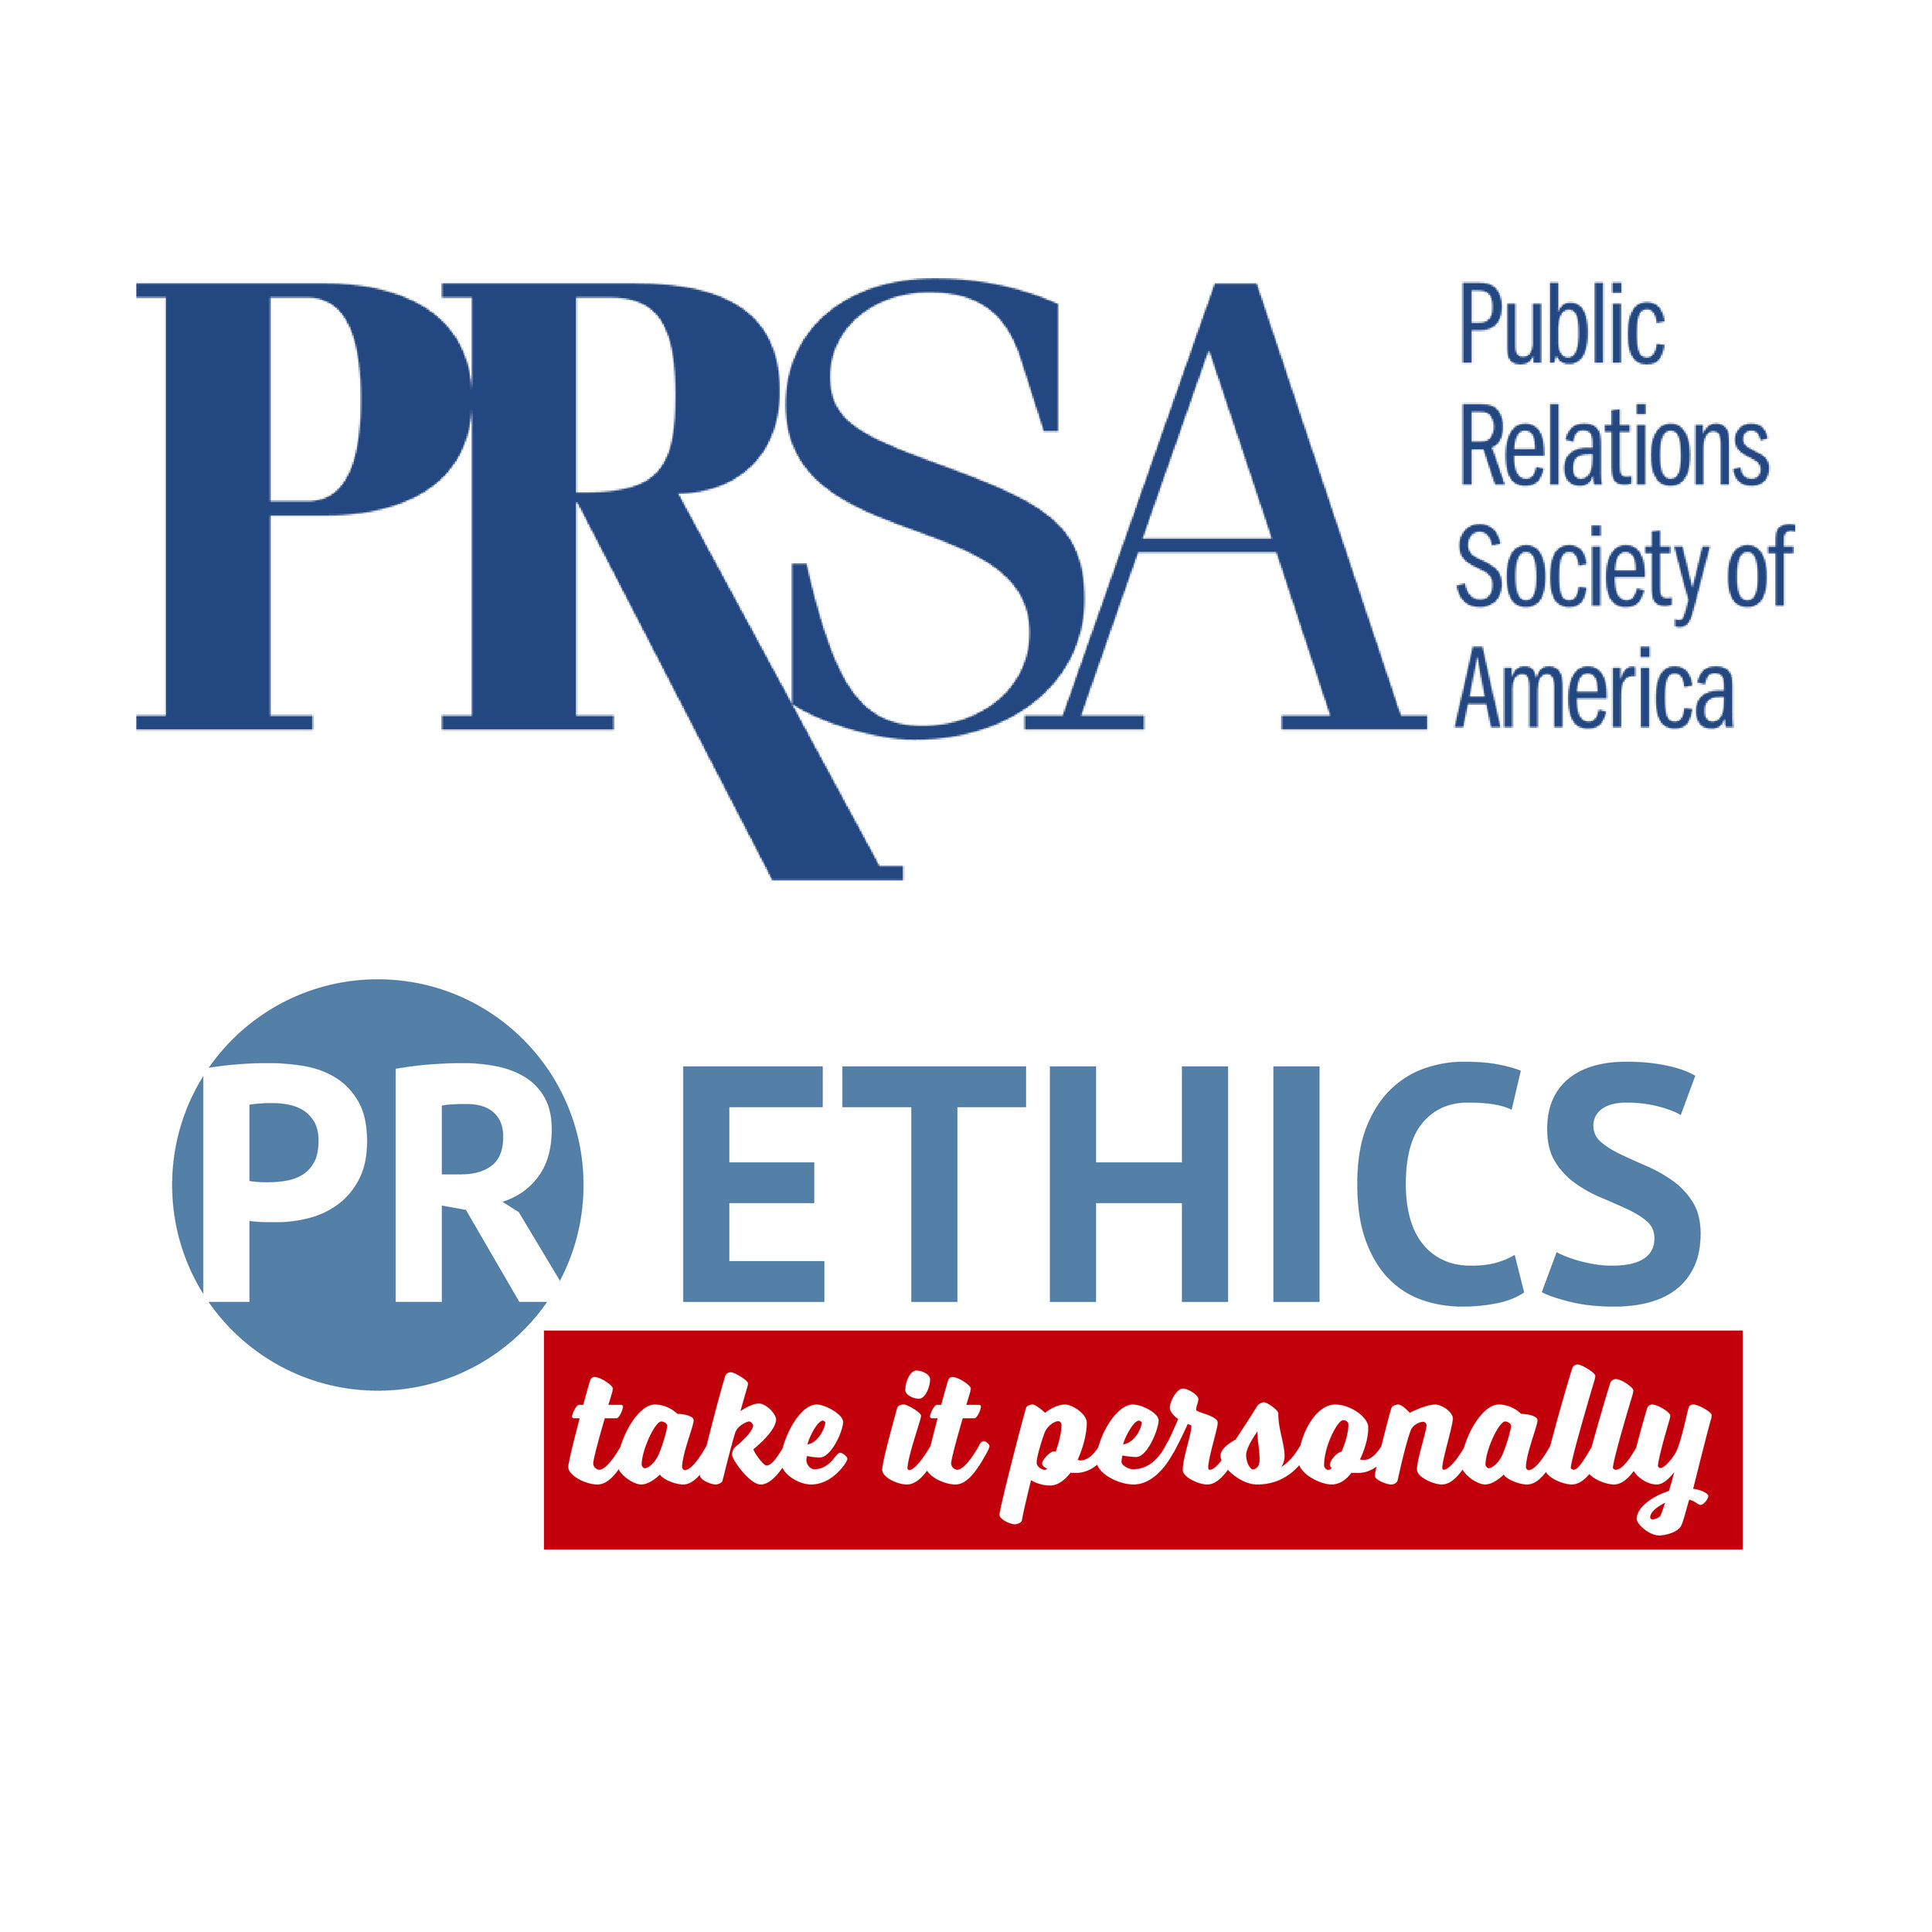 - The PRSA Alabama Ethics project is a partnership between Capstone Agency, PERITUS public relations and PRSA Alabama to promote PRSA's September 2018 ethics month campaign among public relations practitioners, students and educators. Capstone Agency contributed to the campaign by creating tactics and strategies to target students and educators at the nine universities in Alabama with PRSSA chapters. The PRSA ethics project team established objectives to increase awareness, understanding and the identification of PRSA's ethical practices in Alabama PRSSA chapters by the end of the September campaign.